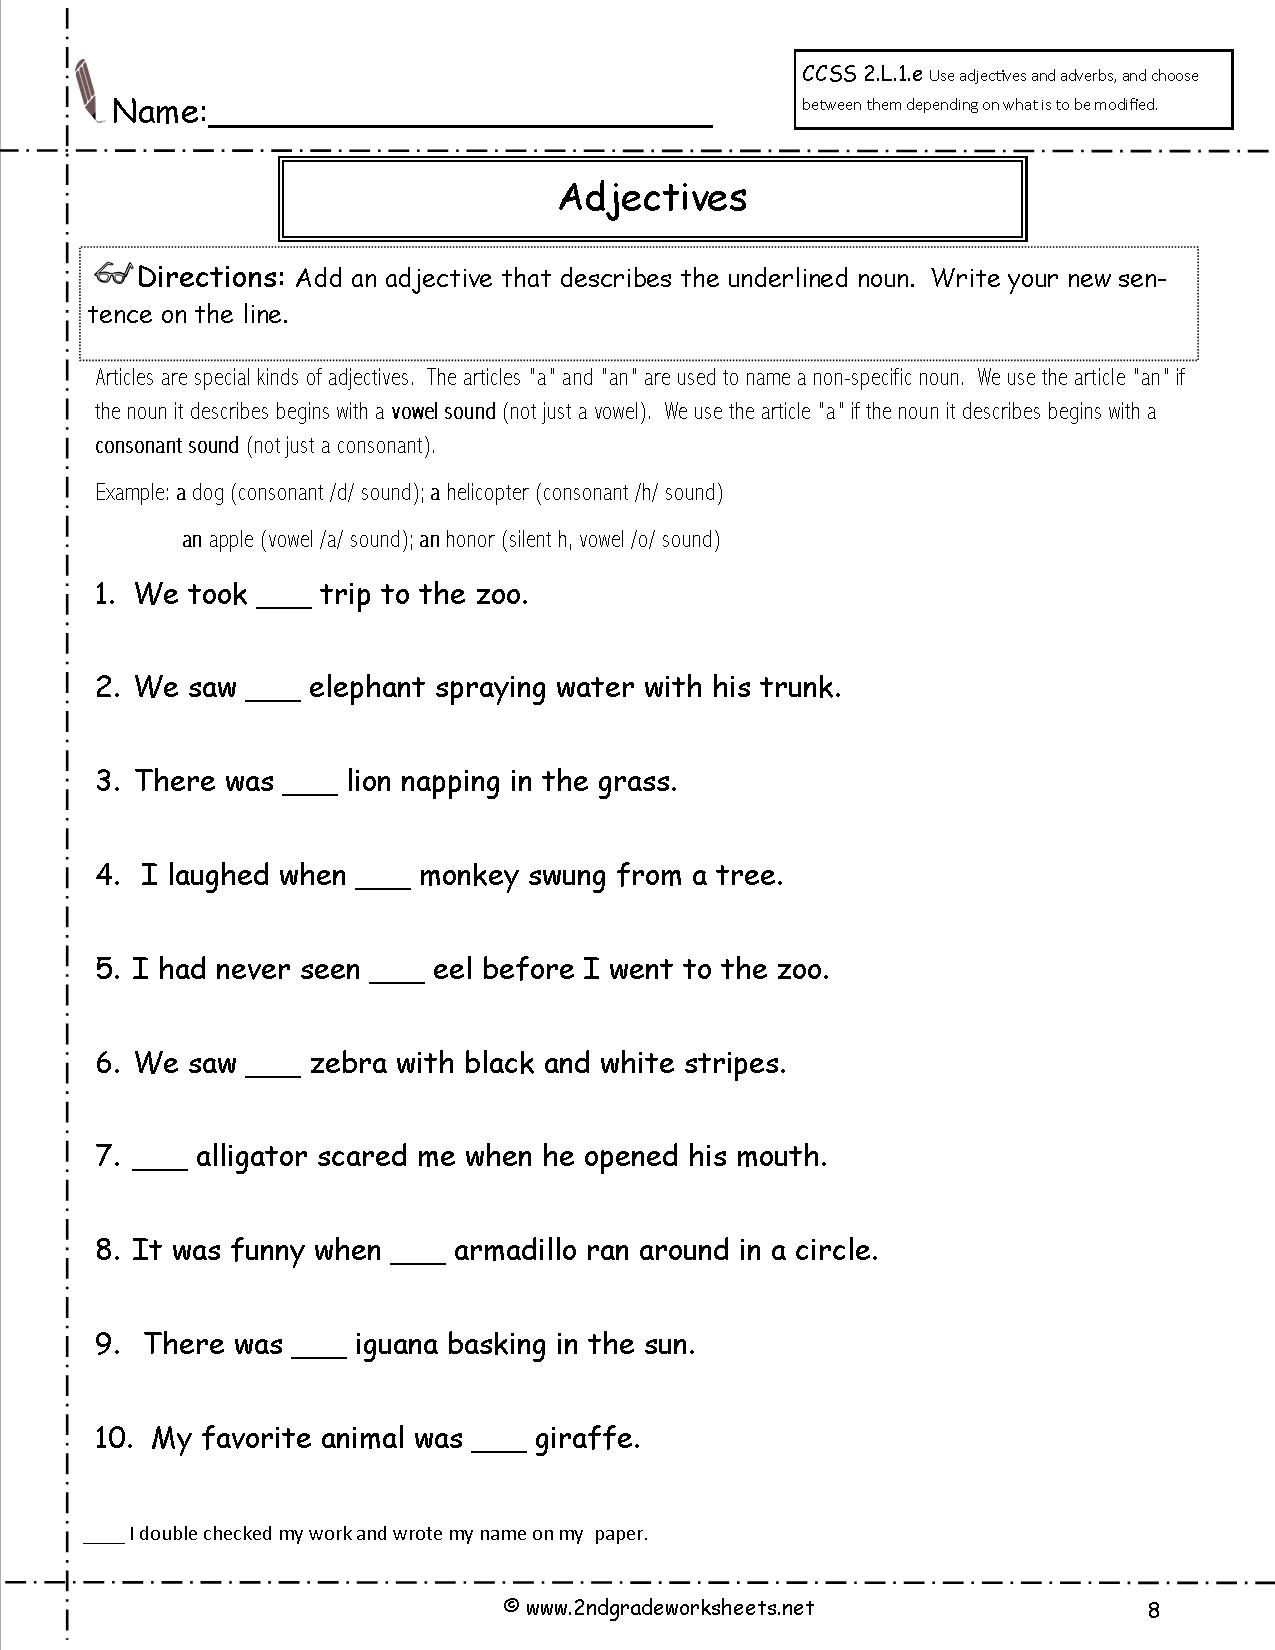 10 Best Images Of Reading And Language Arts Worksheets